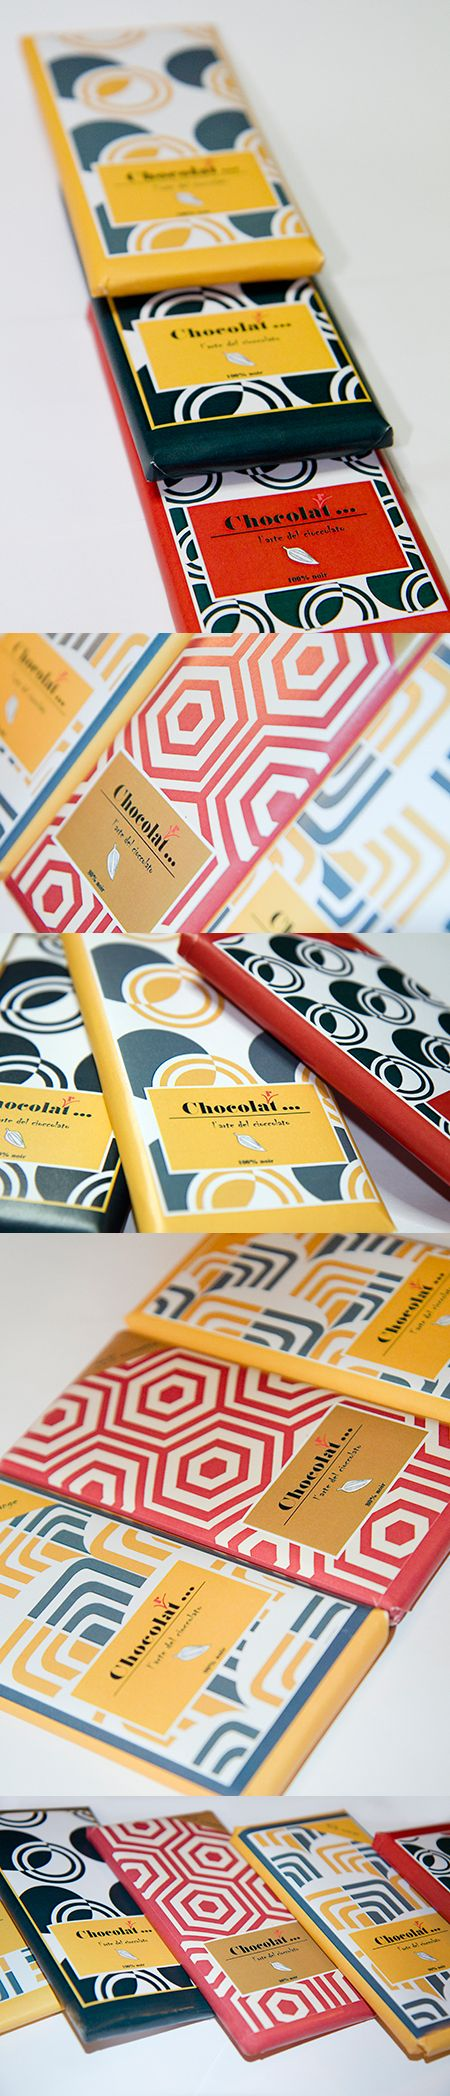 chocolate packaging  like the patterns and colors